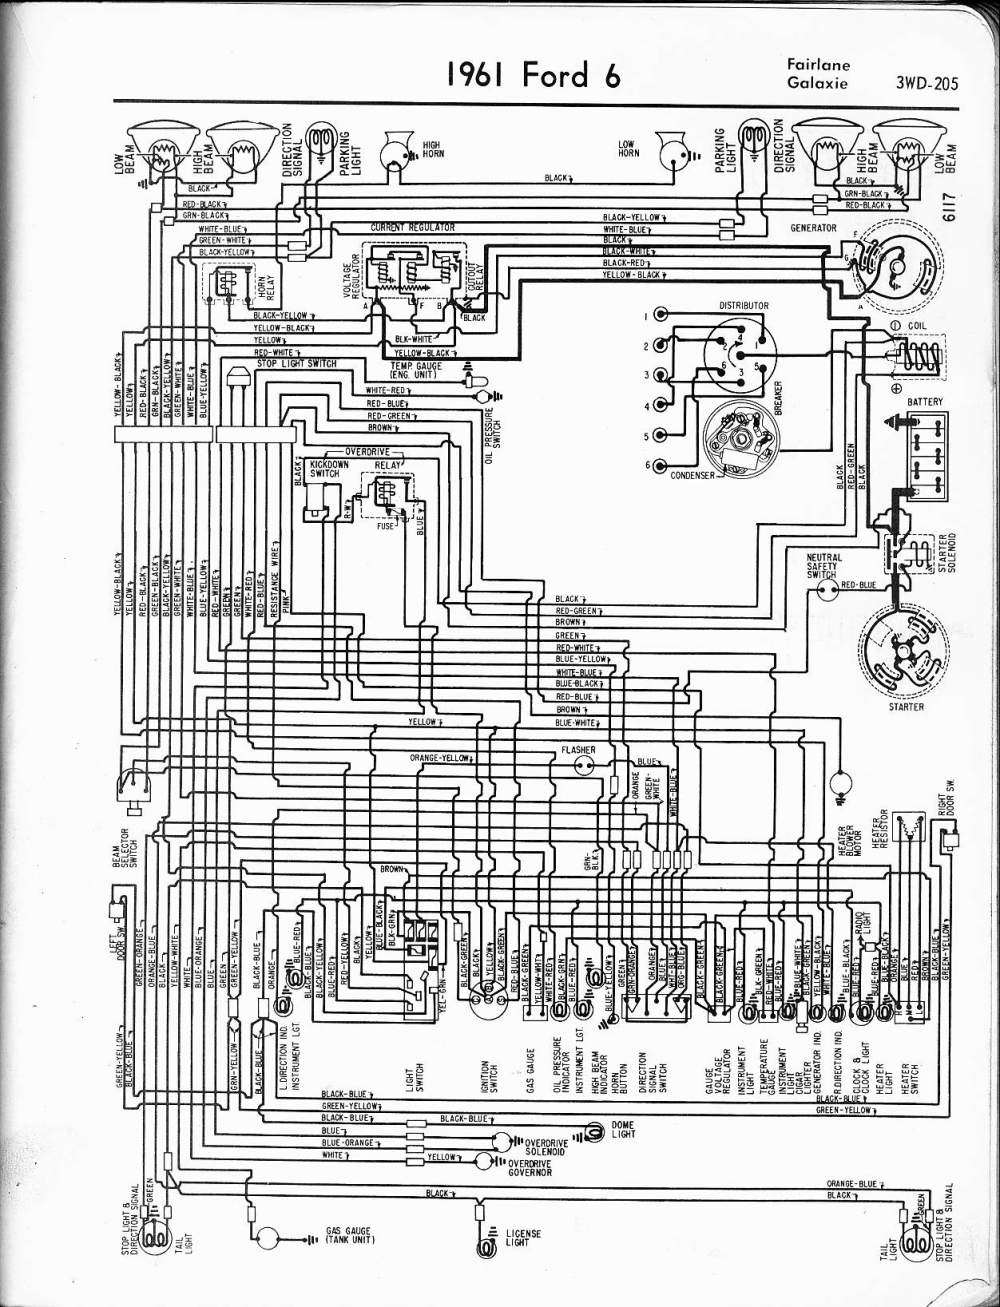 medium resolution of 1972 ford f250 ignition wiring diagram simple wiring diagram rh david huggett co uk 1968 ford